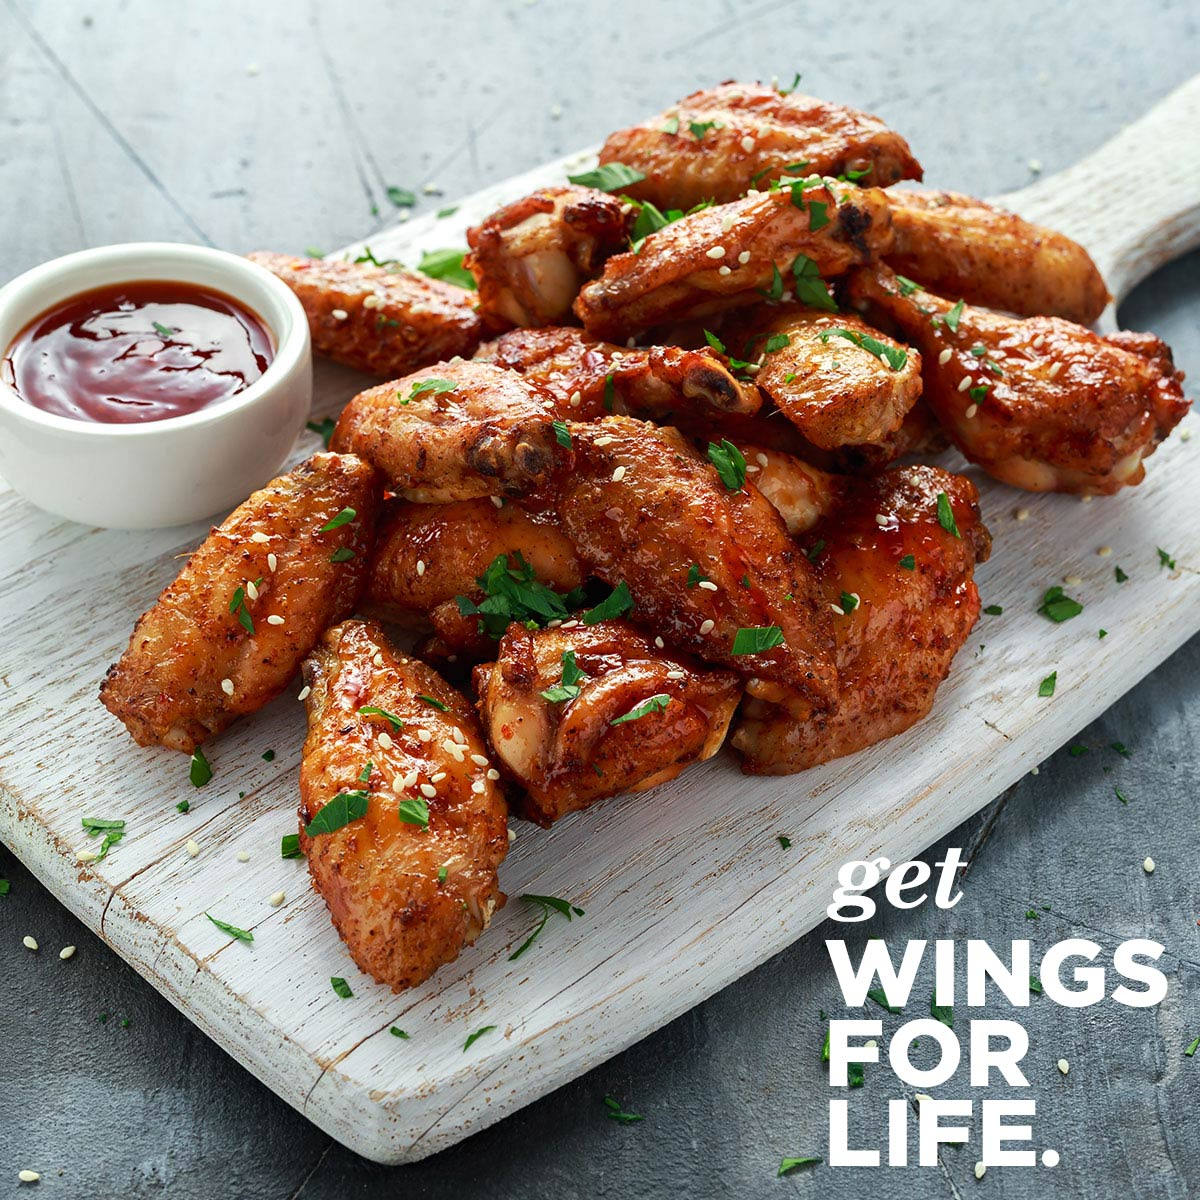 ButcherBox – Free Wings for Life!